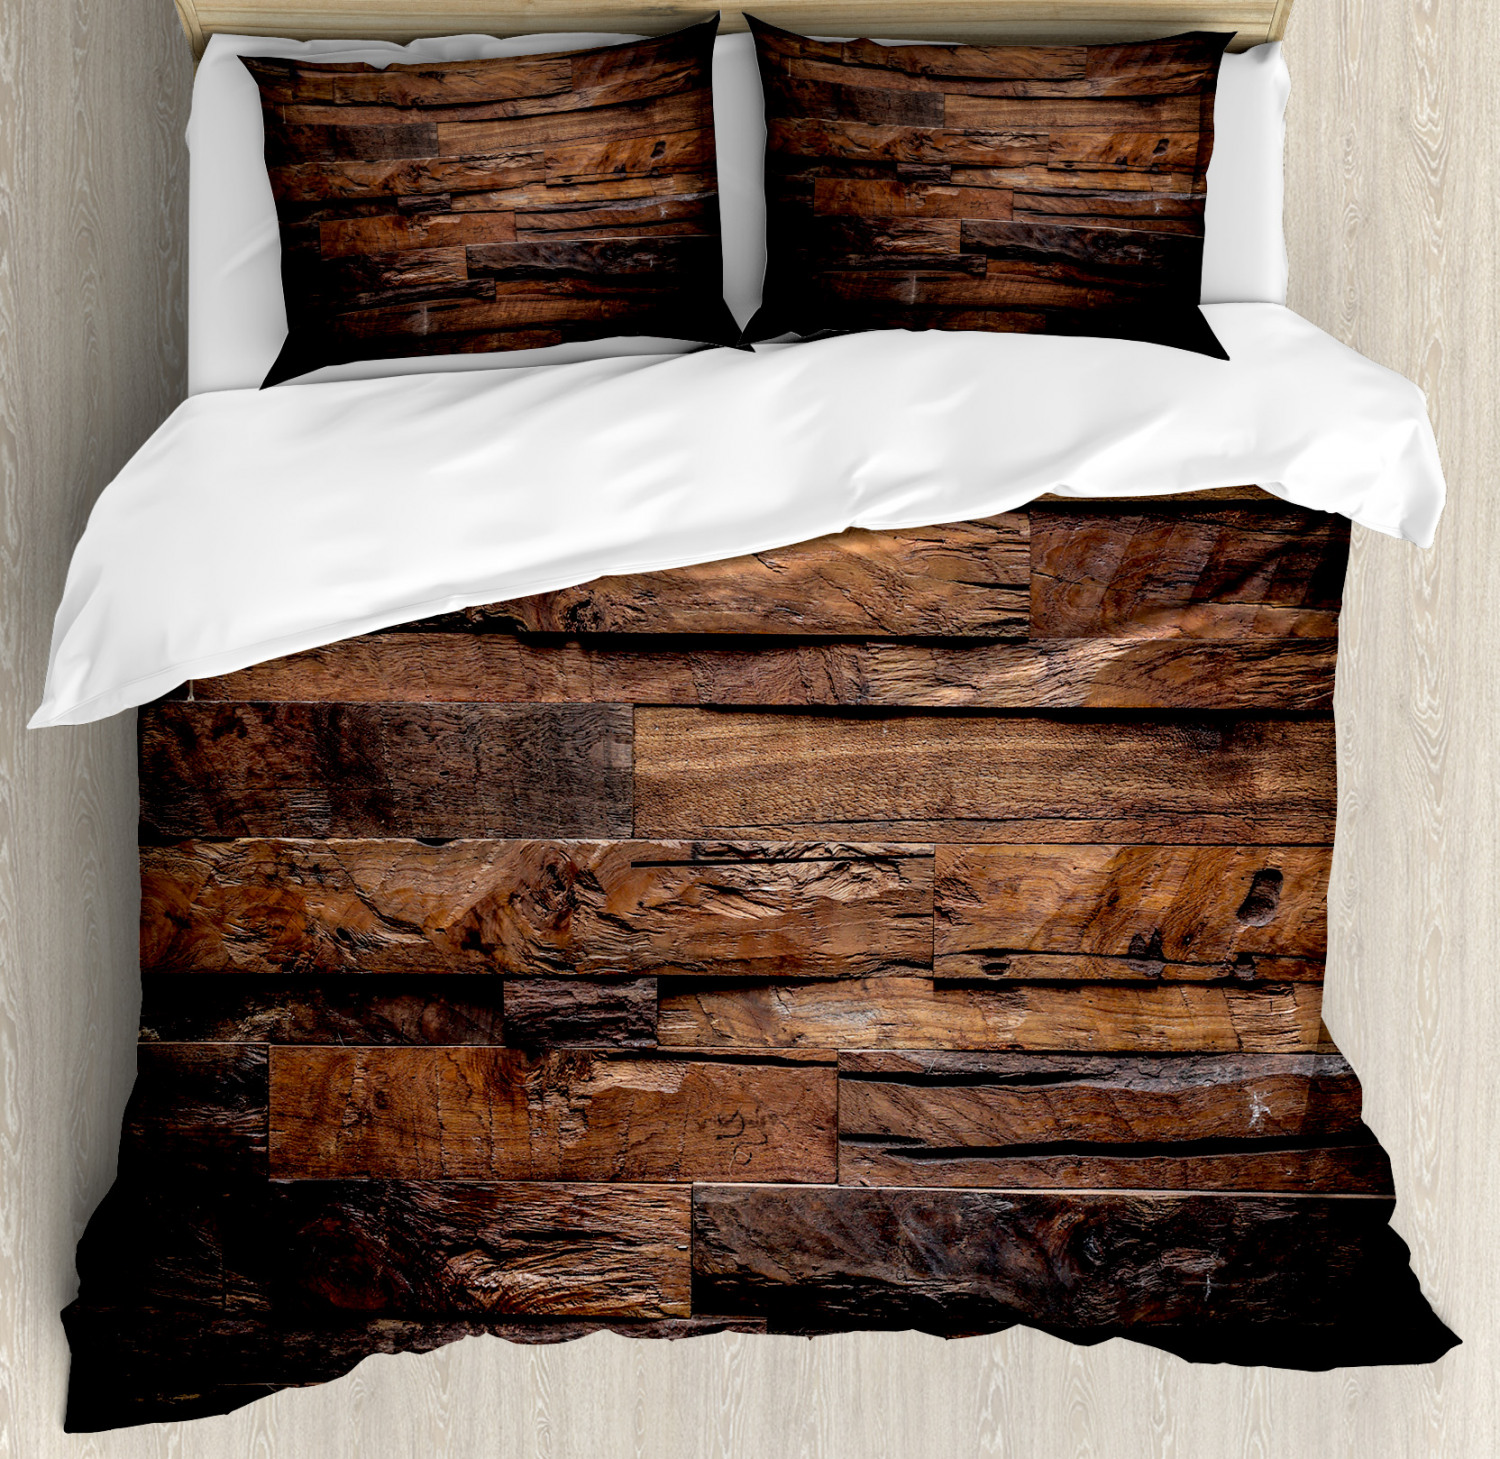 chocolate duvet cover set rough dark timber texture image rustic country theme hardwood carpentry decorative bedding set with pillow shams brown